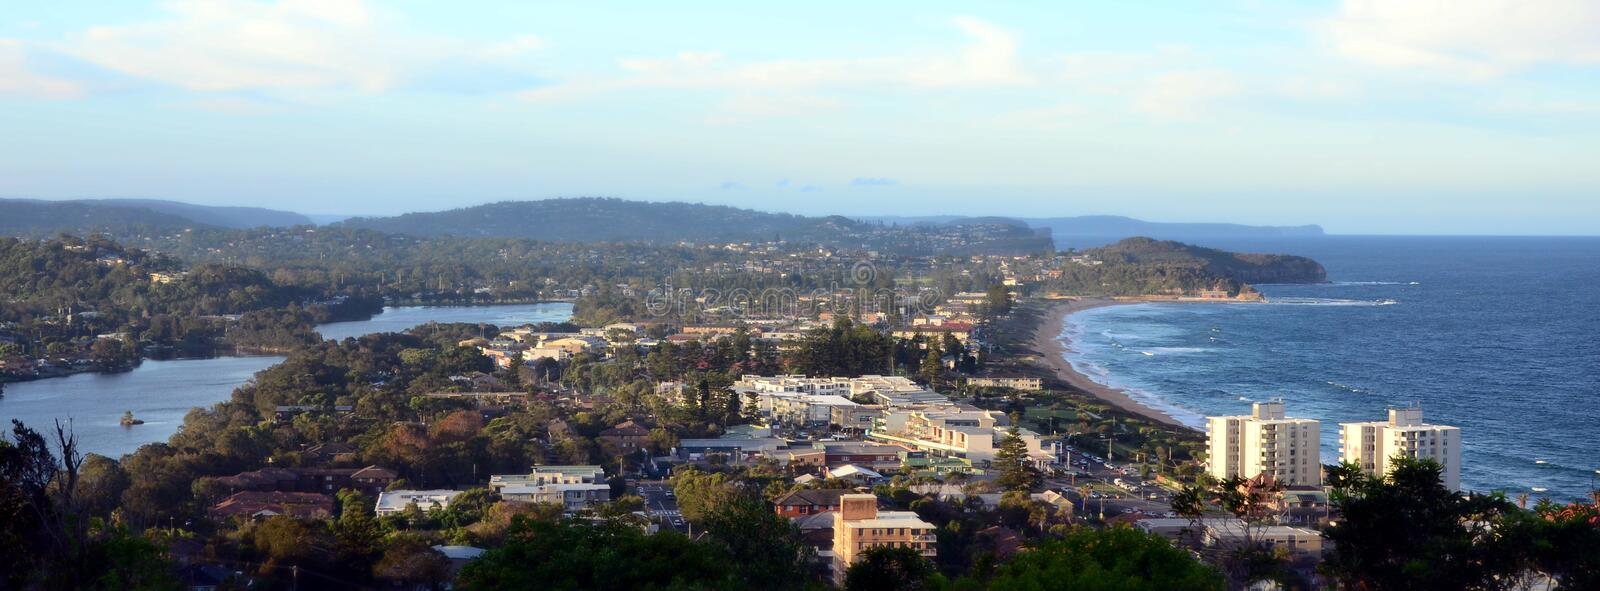 Narrabeen beach and lakes from Collaroy Plateau. (Sydney, NSW, Australia stock photography